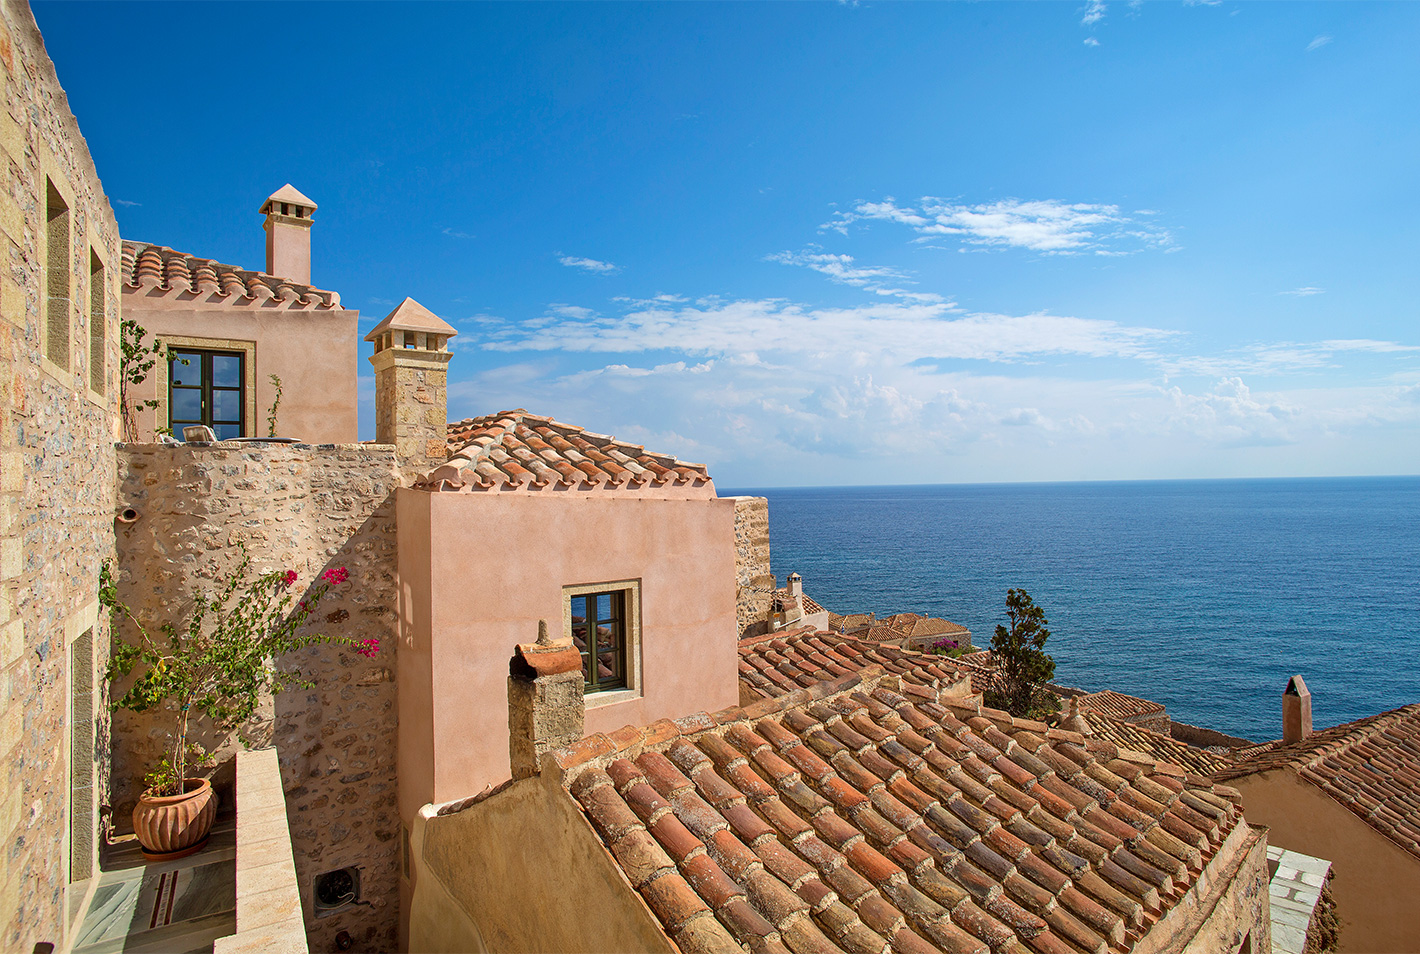 monemvasia hotels - Moni Emvasis Luxury Suites